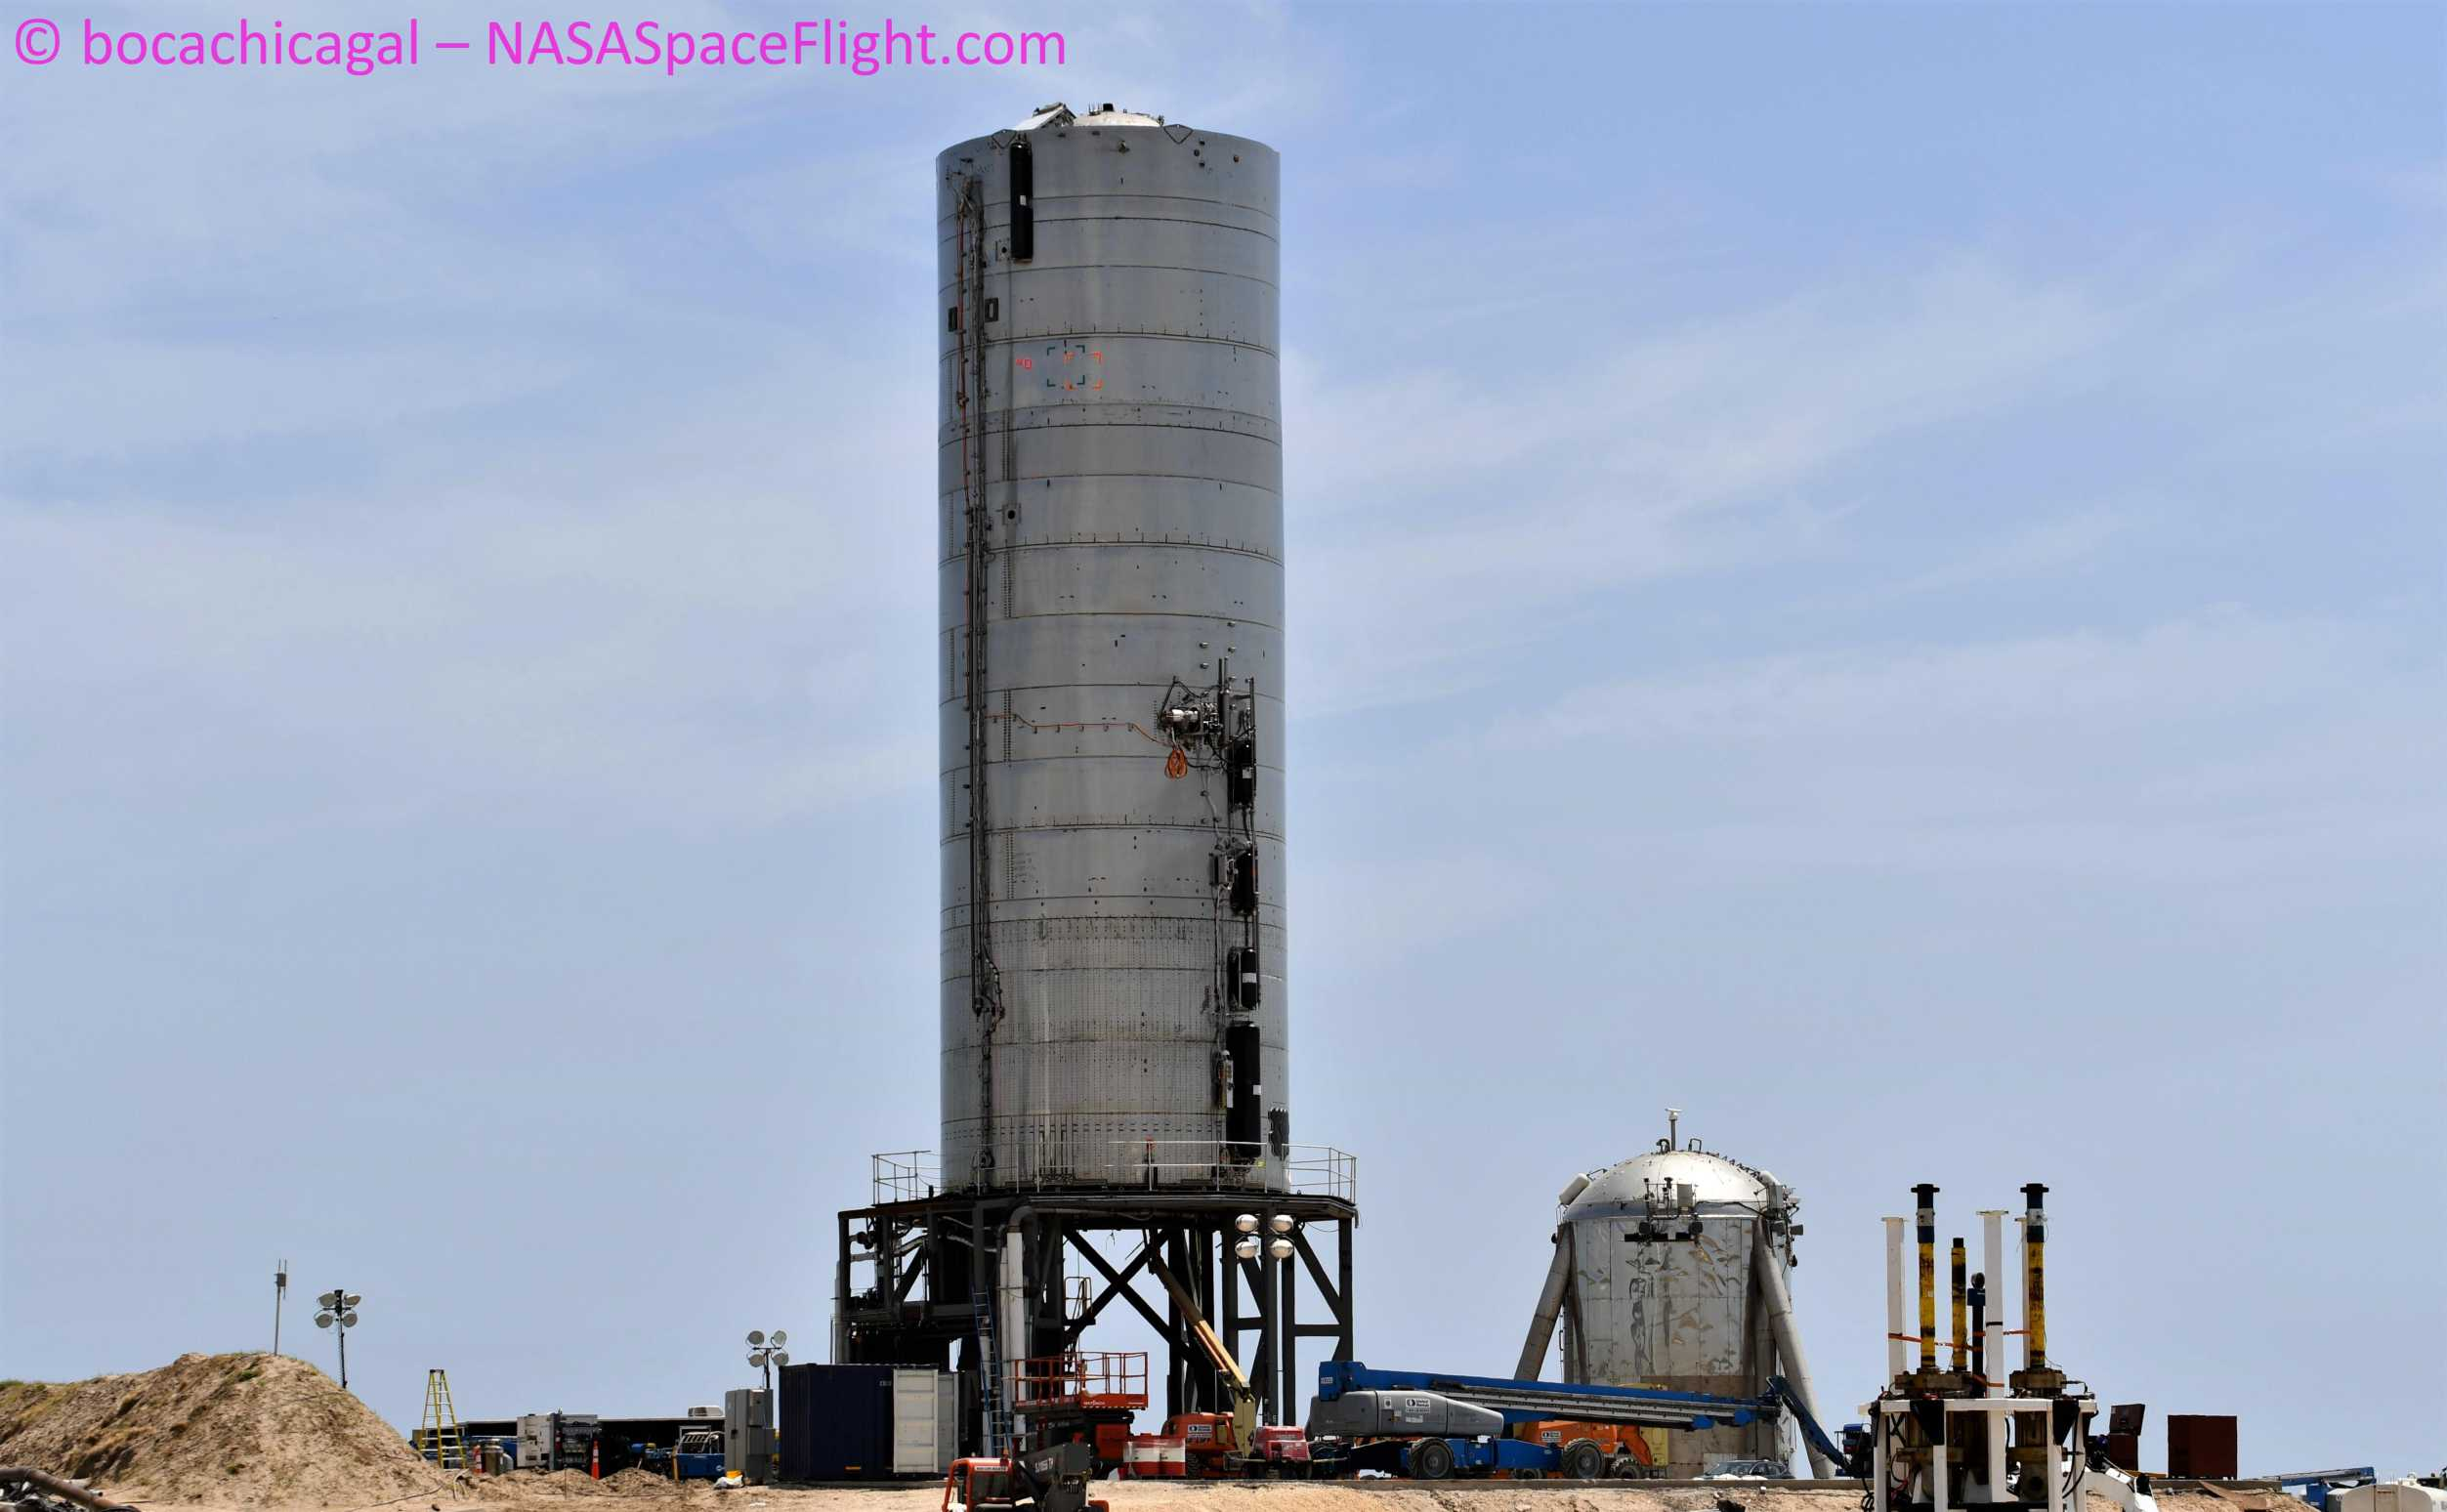 Starship Boca Chica 070320 (NASASpaceflight – bocachicagal) SN5 pad work 5 crop (c)